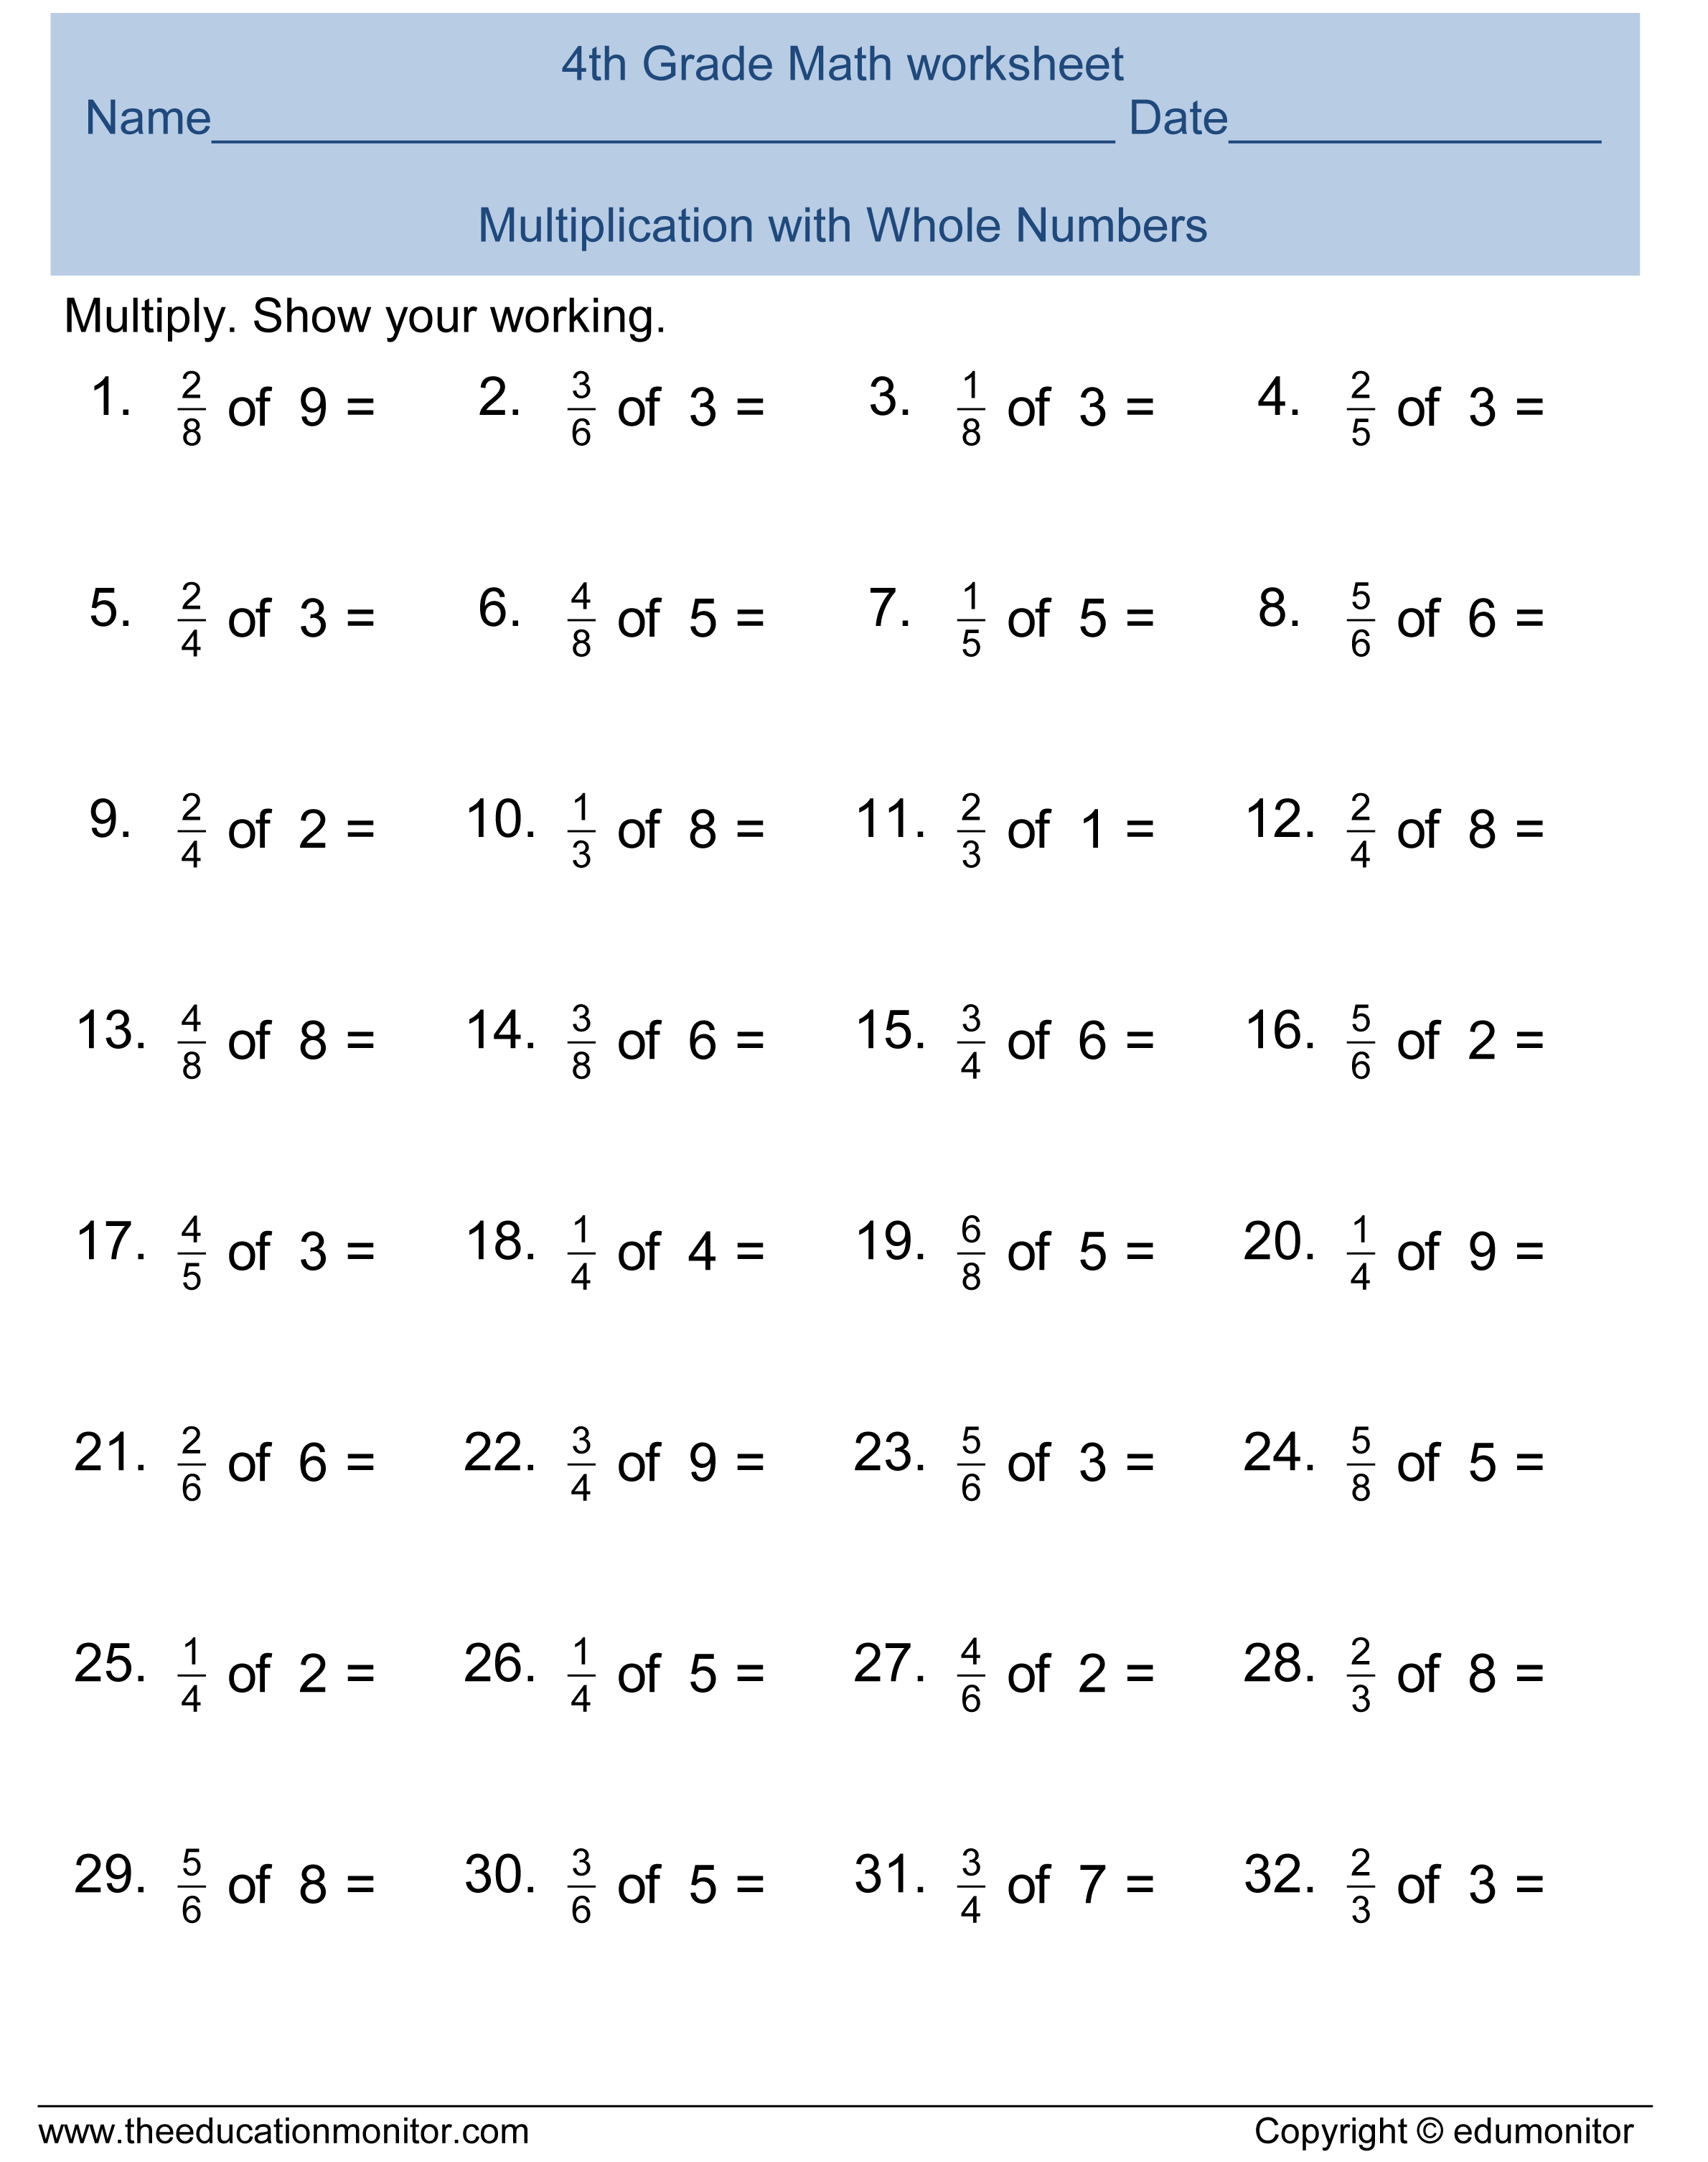 Free Printable Worksheets for 4th Grade – 4rd Grade Math Worksheets